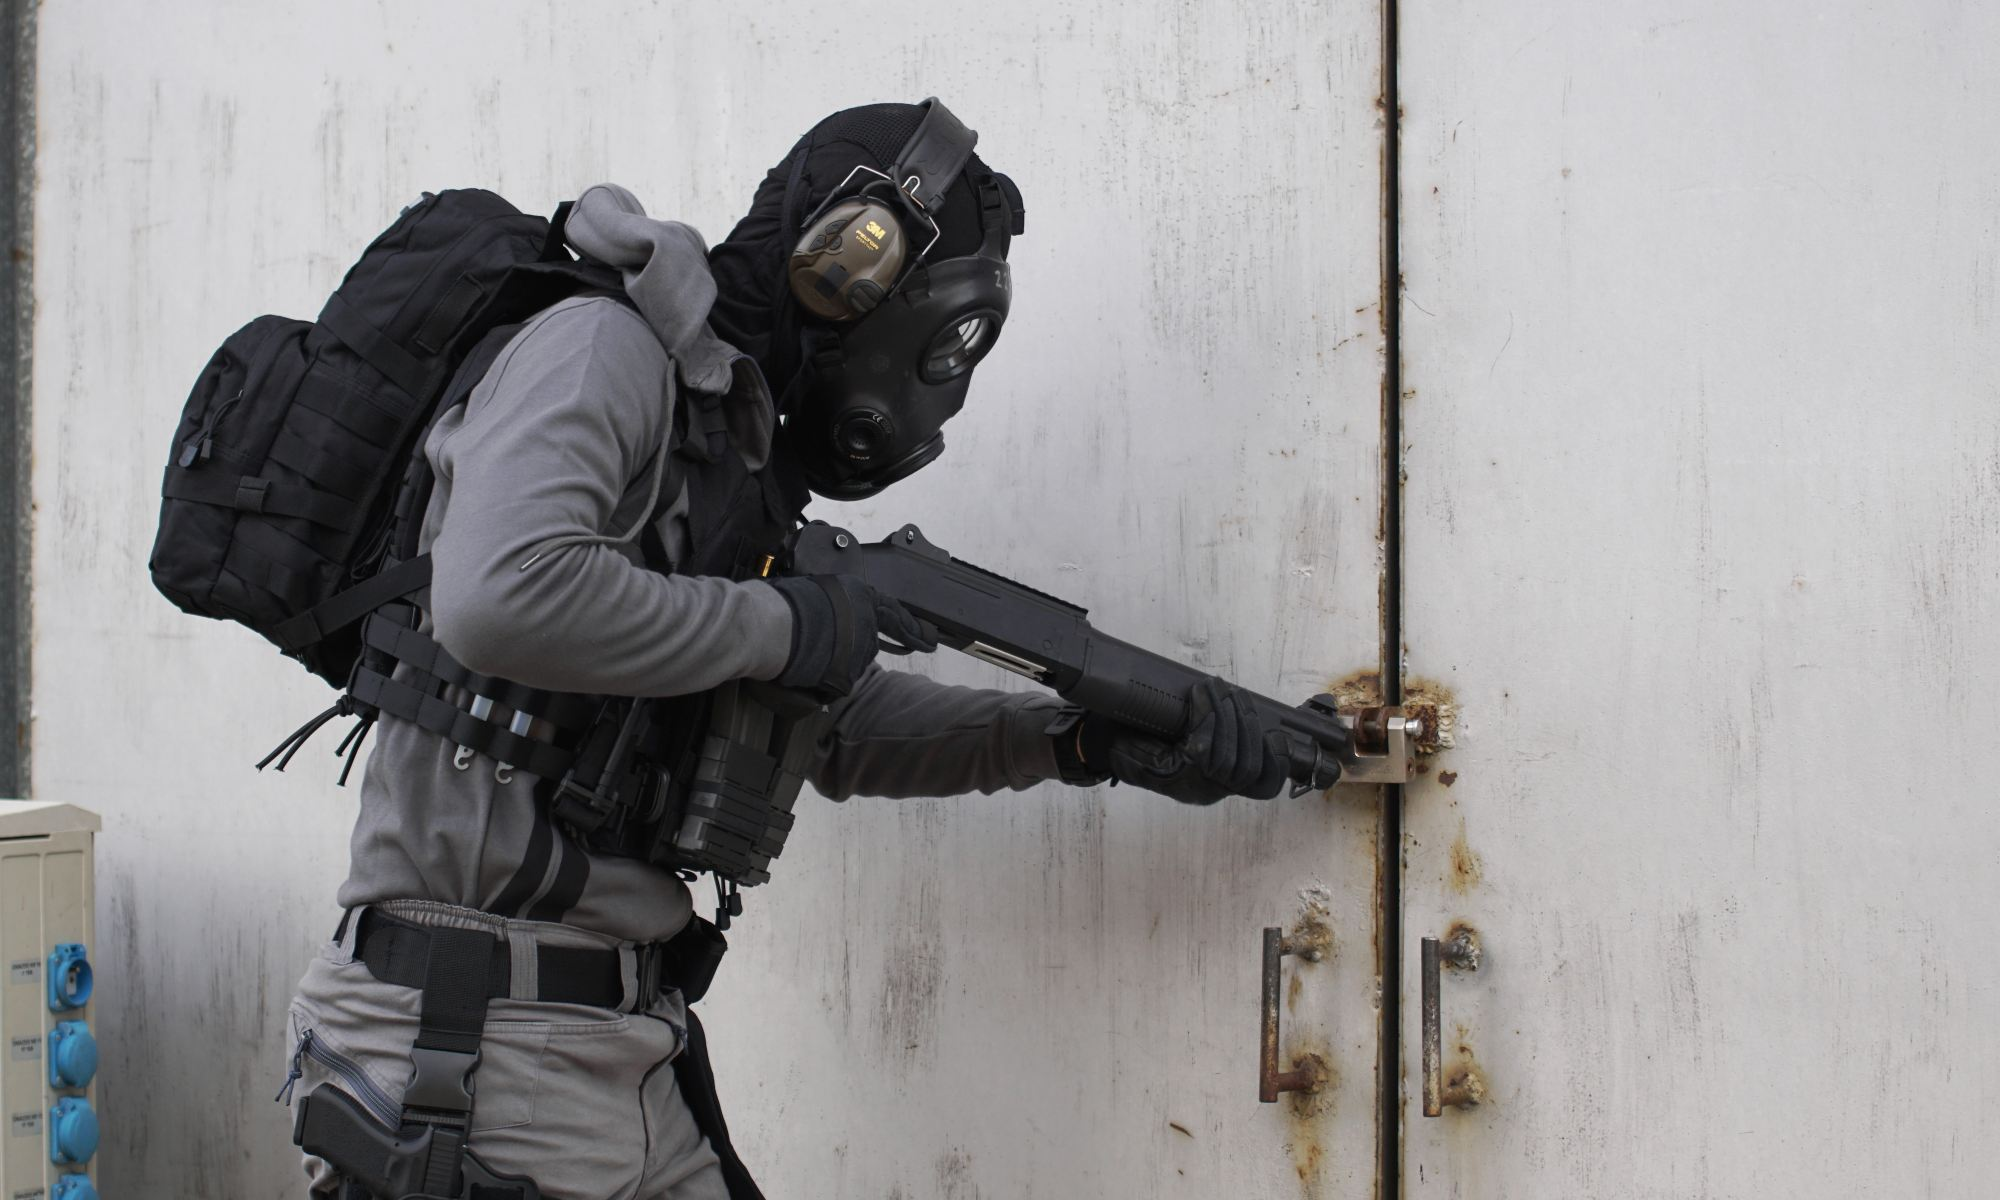 Mentally ill person wearing armor suit and carrying shotgun